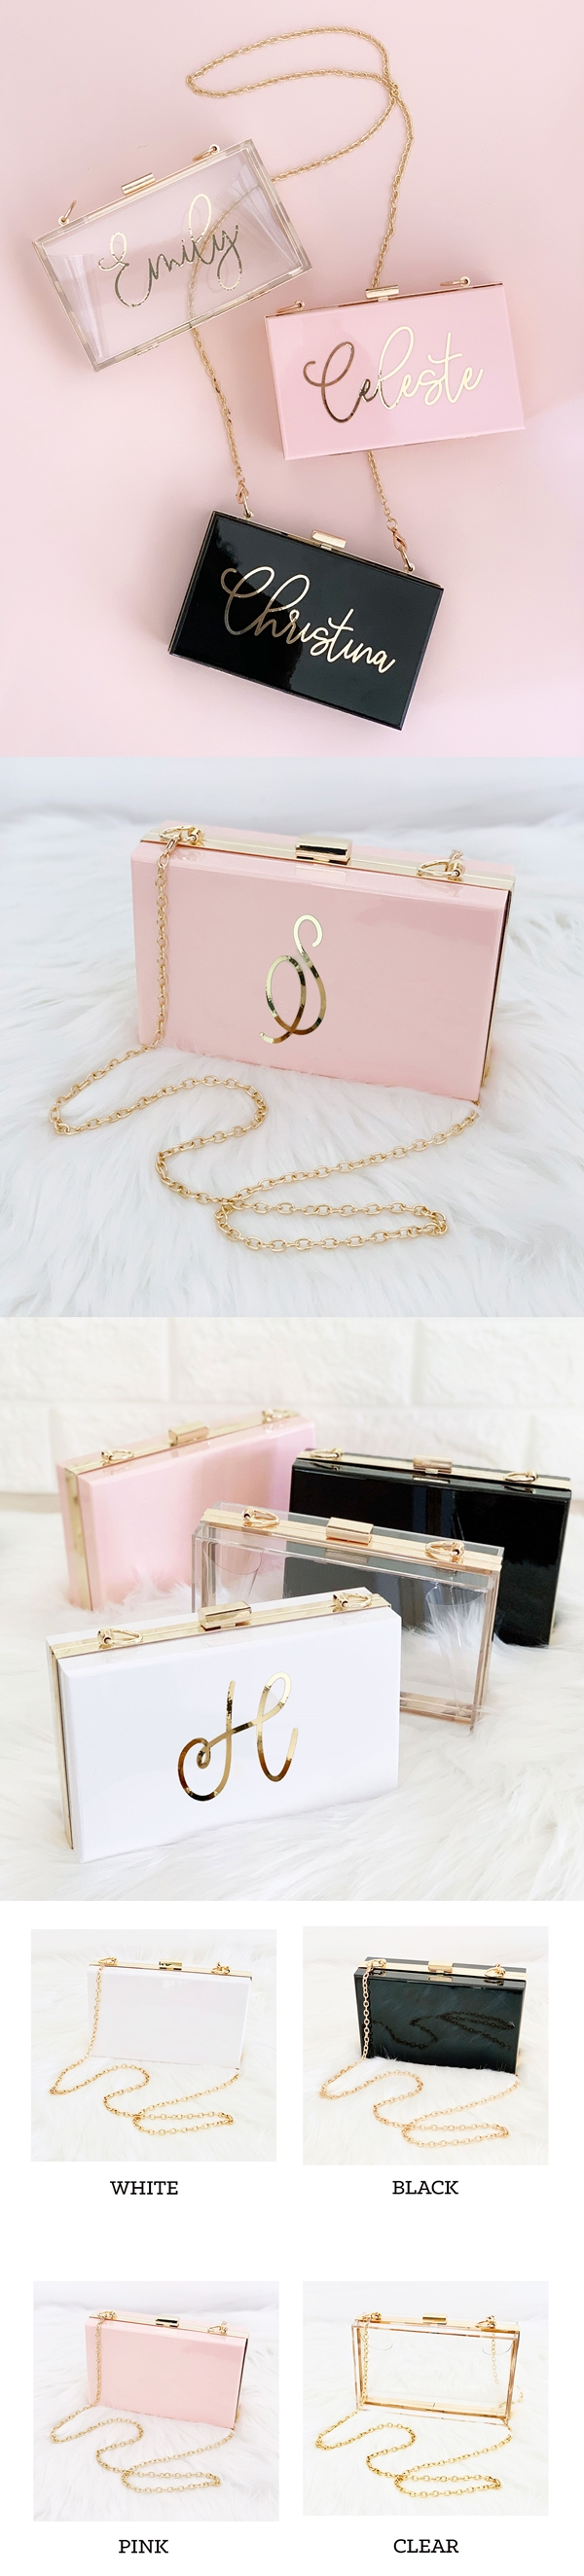 Event Blossom Personalized Cross-Body Acrylic Purse with Gold Trim